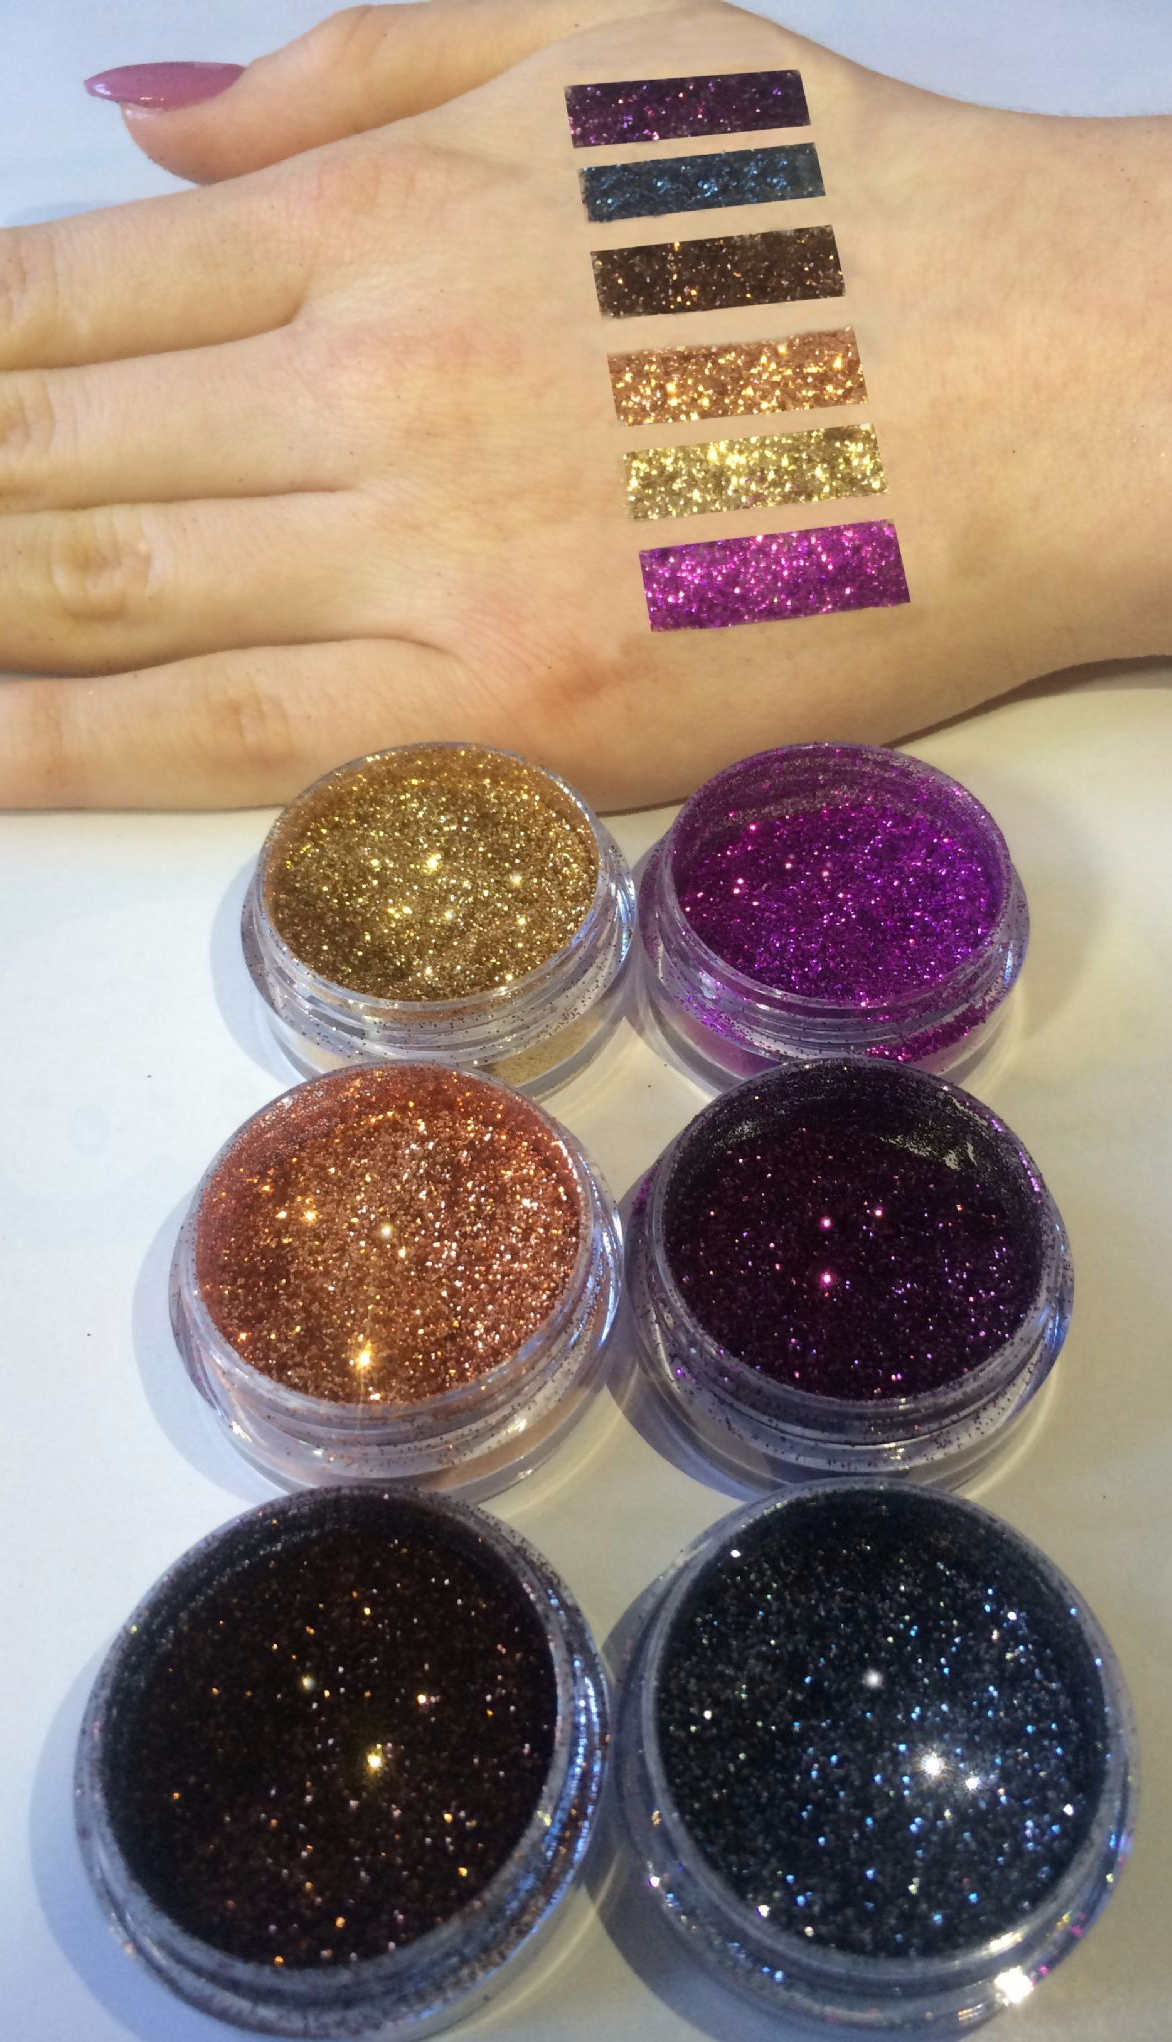 xMake up Artists Limited Edition Glitter set (includes